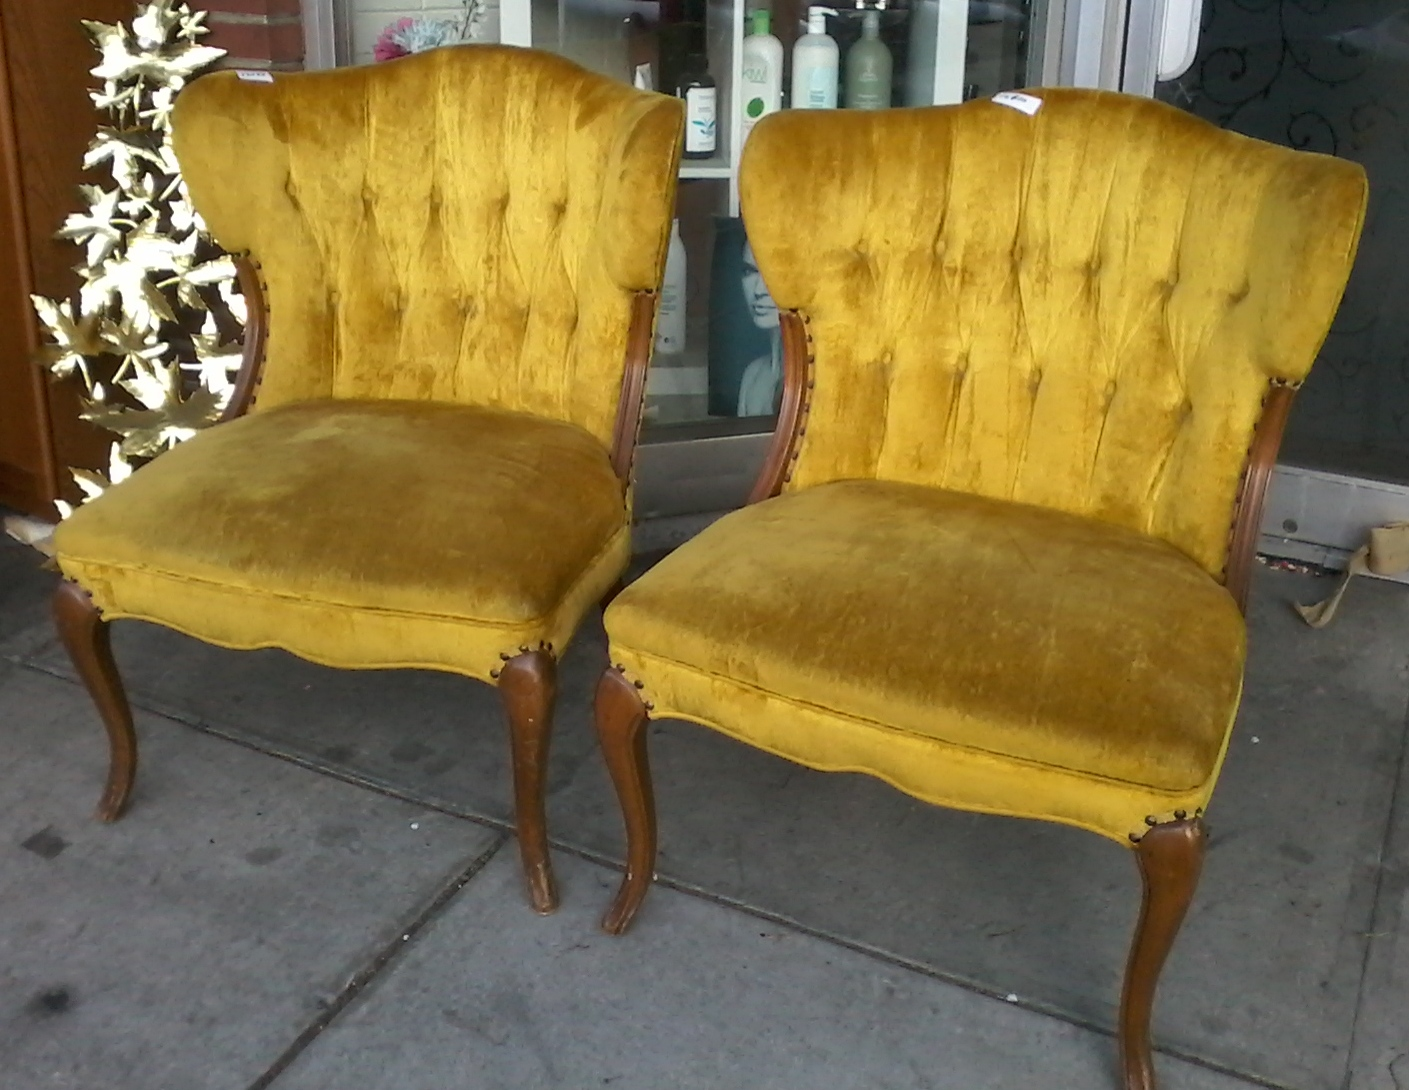 Accent Chairs Under 150 Parson Dining Room Uhuru Furniture And Collectibles Sold 12099 Vintage Golden